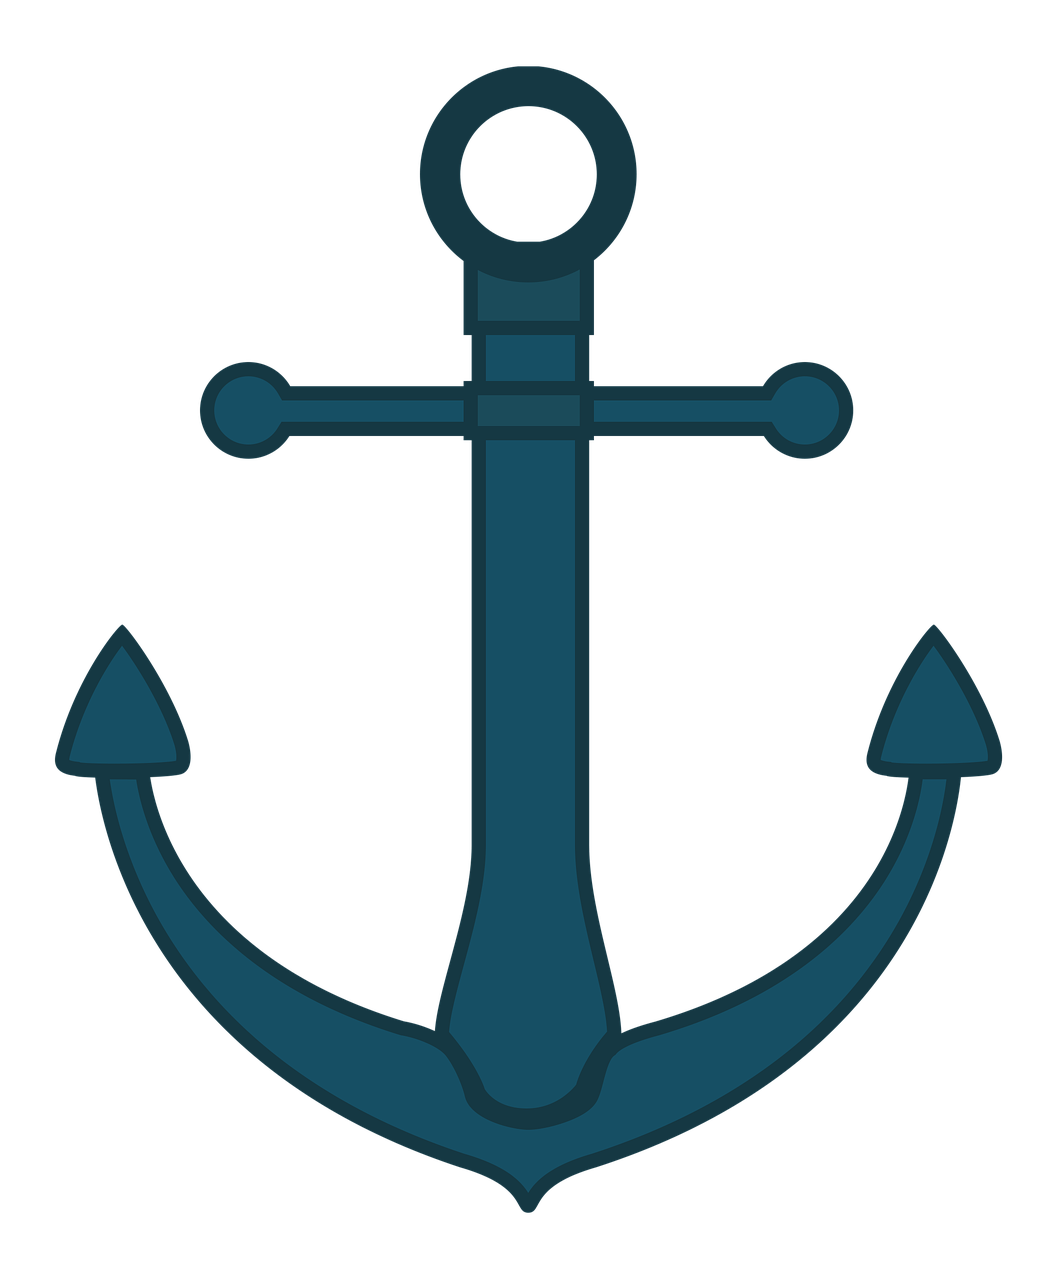 anchor,ship,nautical,marine,old,sea,boat,ocean,travel,maritime,emblem,navy,logo,sail,free pictures, free photos, free images, royalty free, free illustrations, public domain